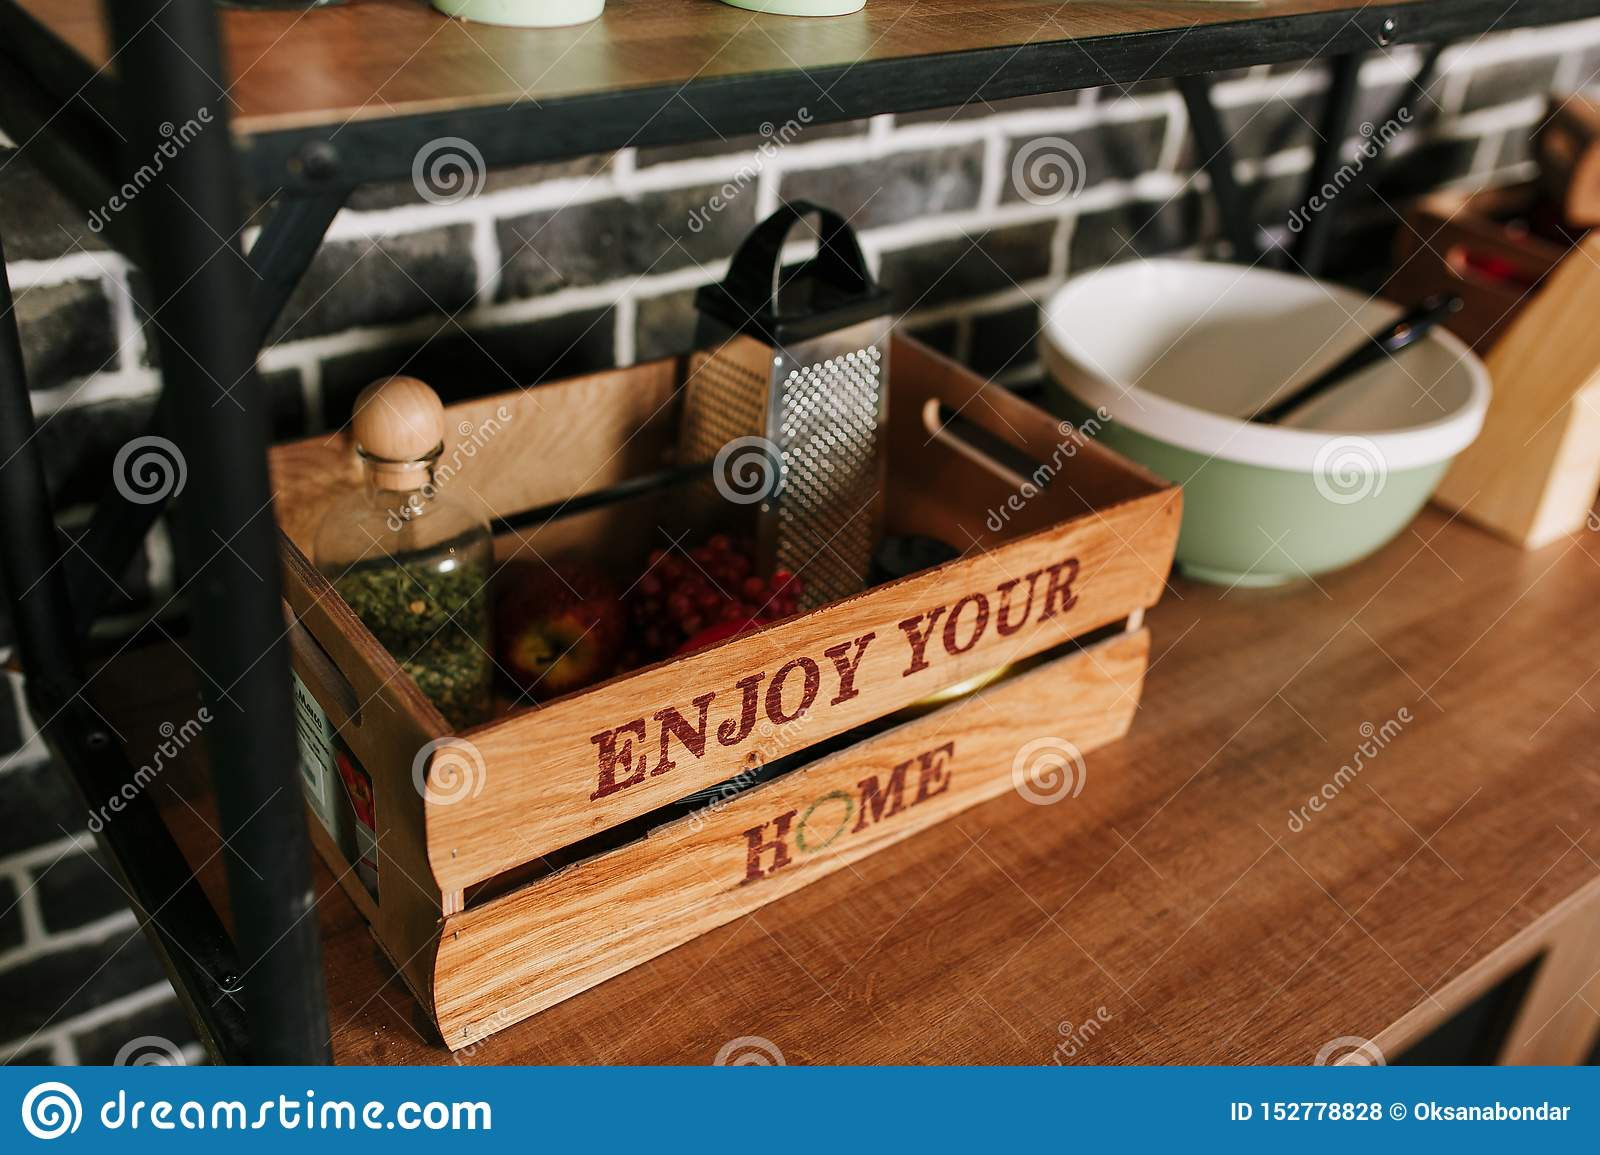 Wooden Home Decor And Storage Box At Modern Kitchen Kitchenware Keeping Stock Photo Image Of House Office 152778828